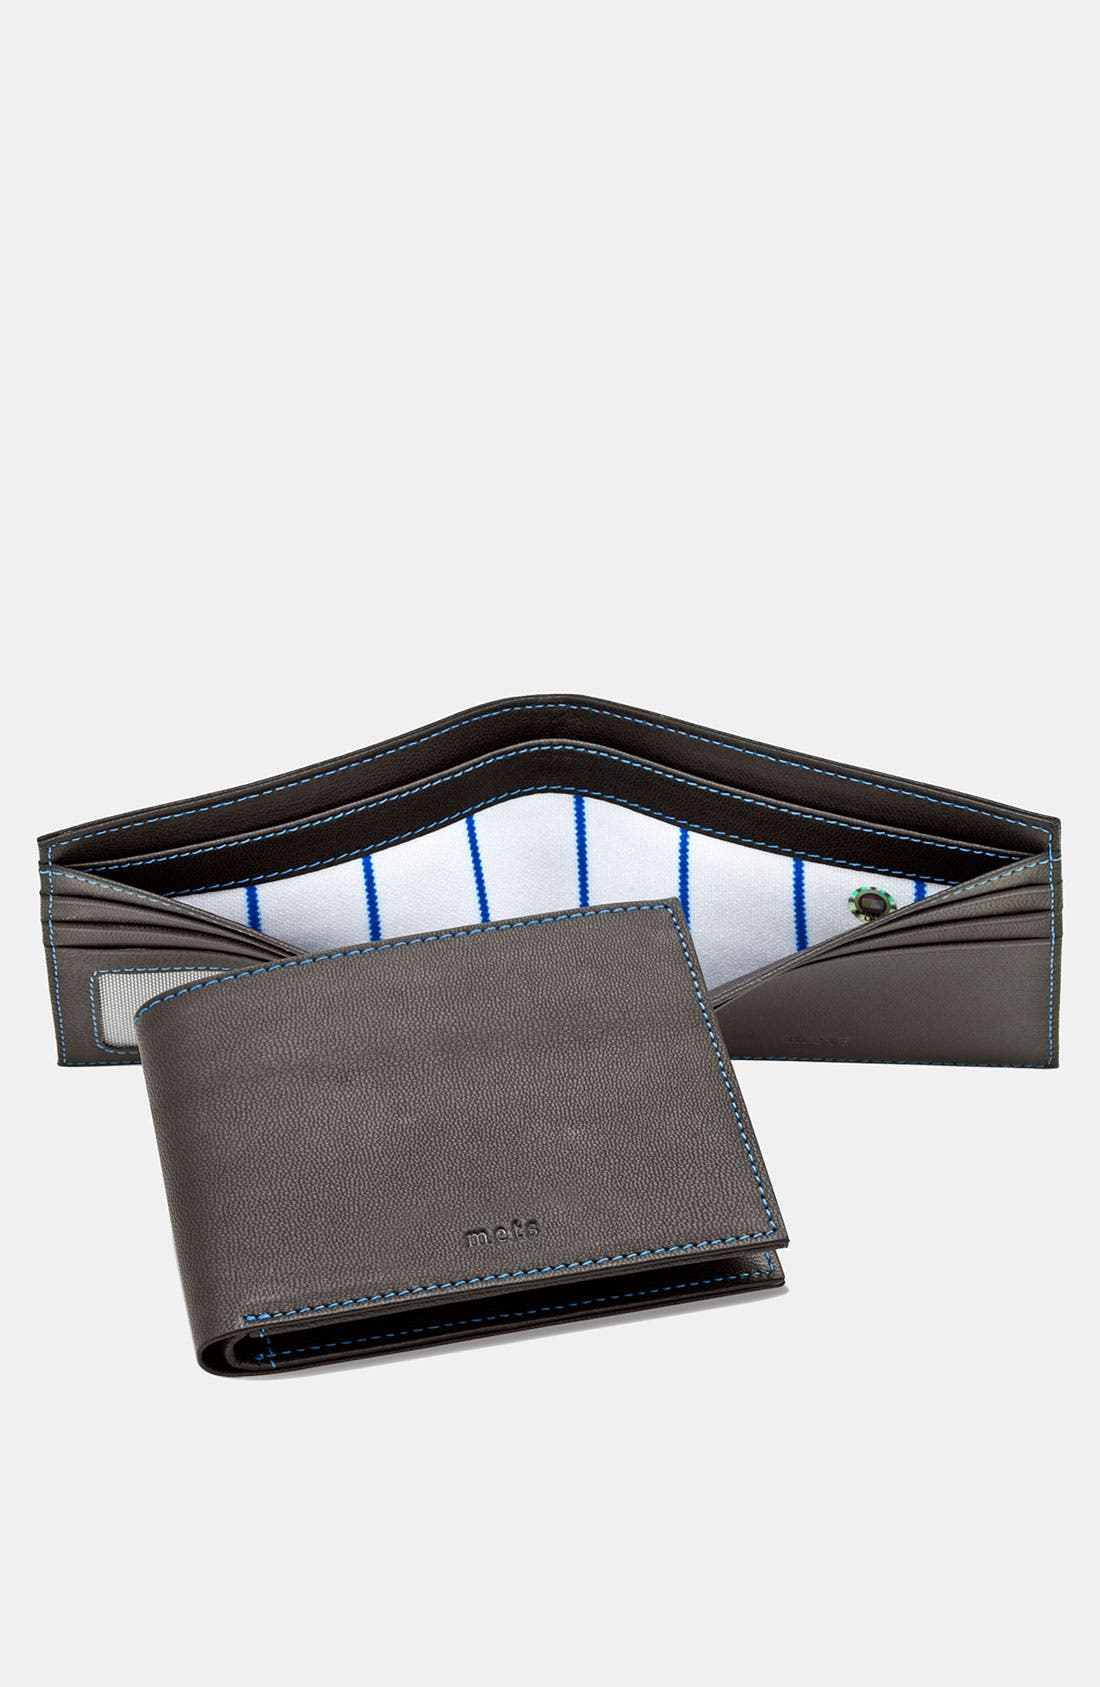 Alternate Image 1 Selected - Tokens & Icons 'New York Mets' MLB™ Game-Used-Uniform Wallet